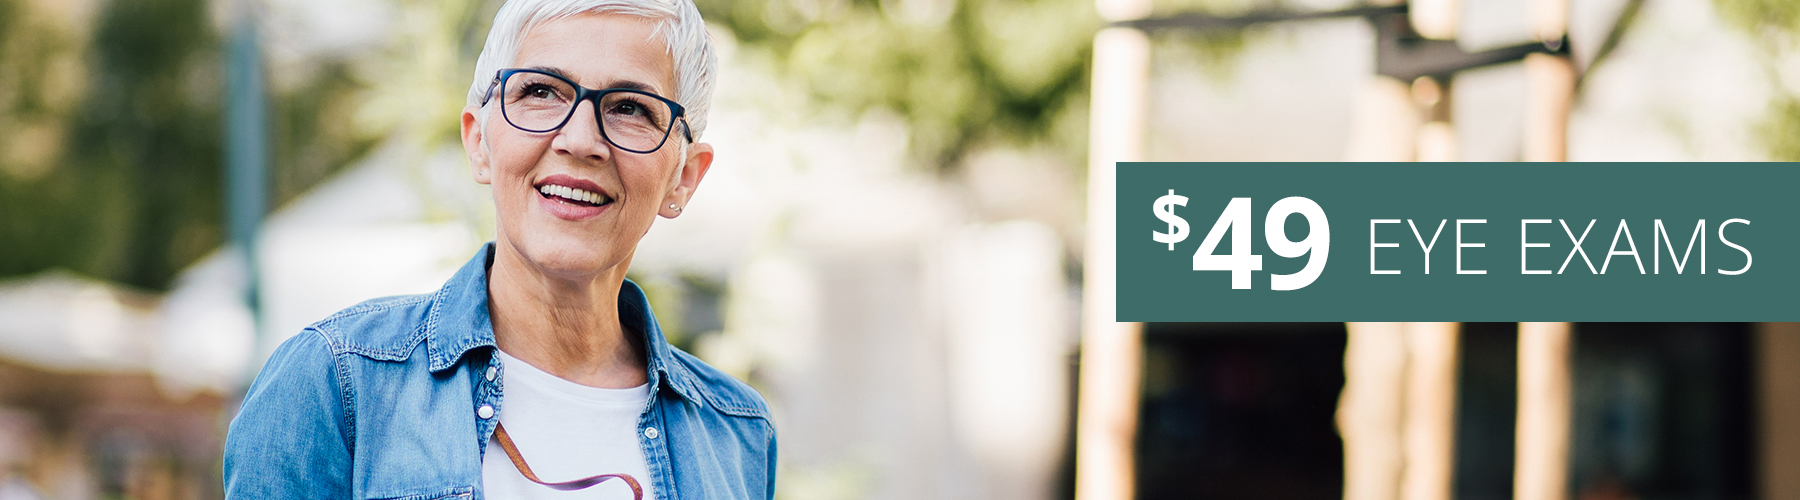 $49 eye exams thru June 2020 - All Wisconsin Vision ...